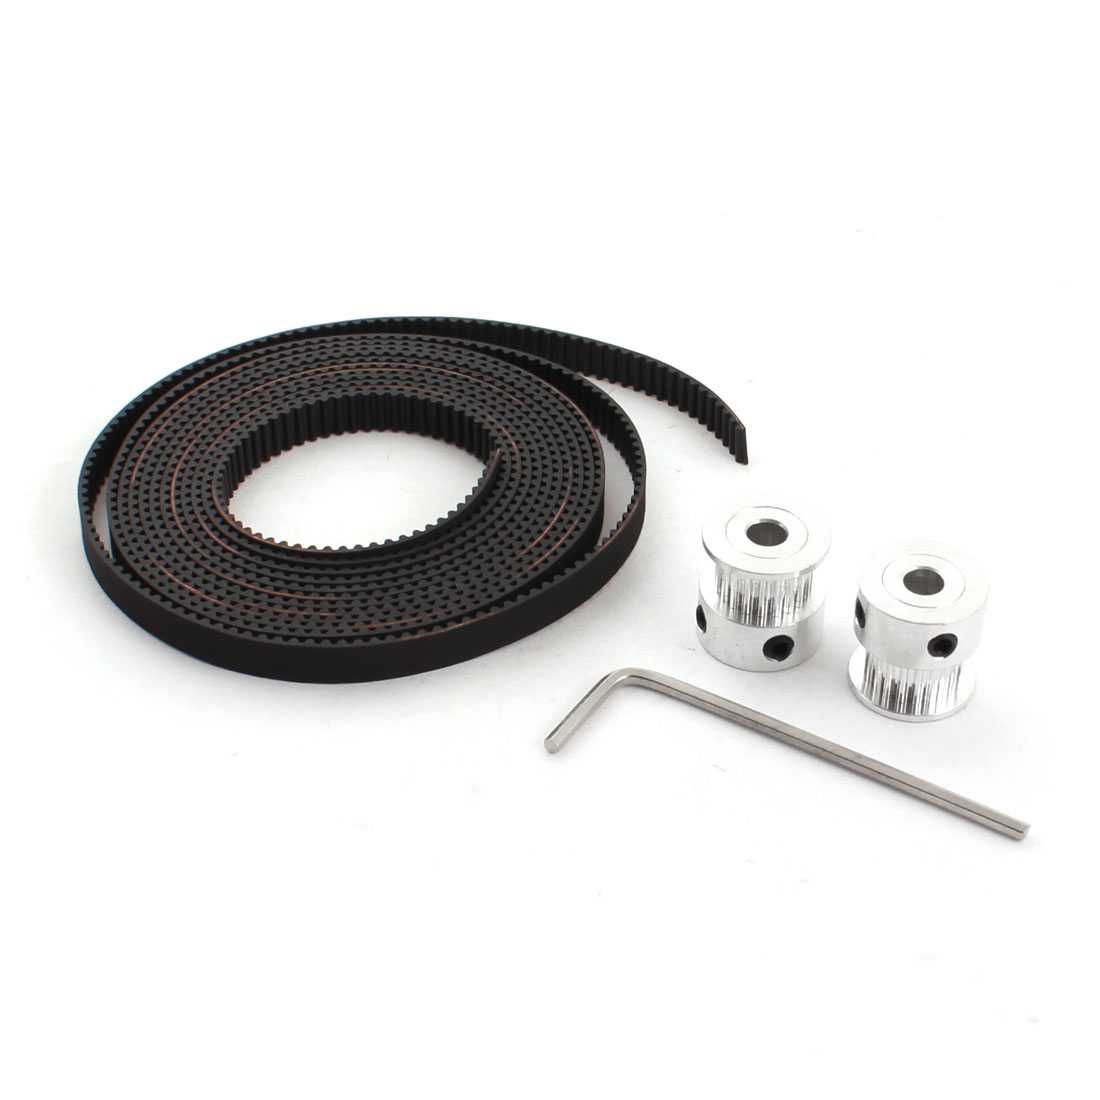 2GT 20T 5mm Bore Timing Pulley 2M Open End Belt Set for RepRap 3D Printer